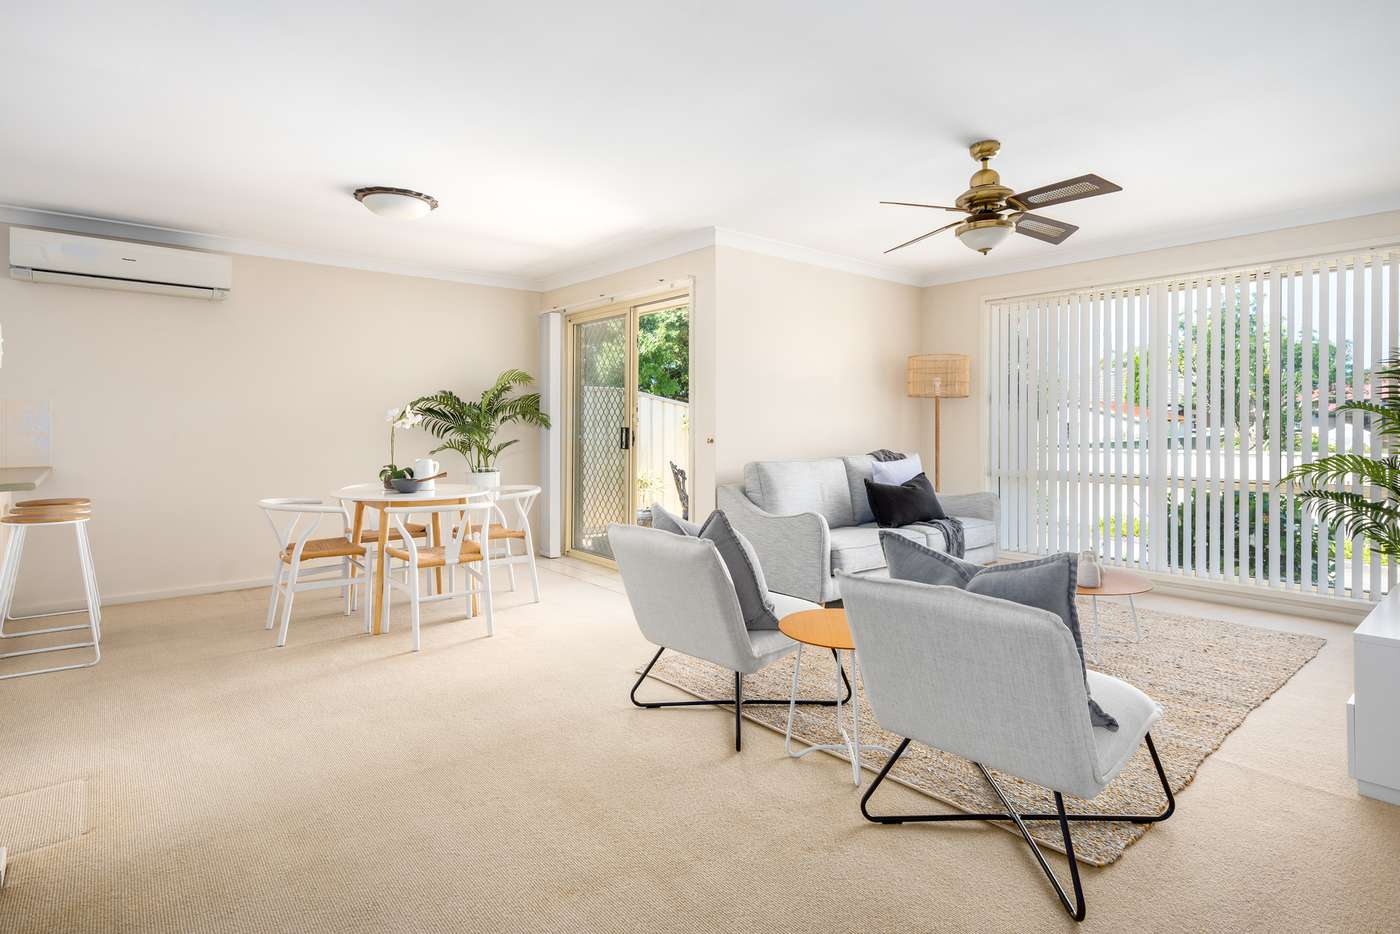 Fifth view of Homely villa listing, 10/34 Kings Road, New Lambton NSW 2305